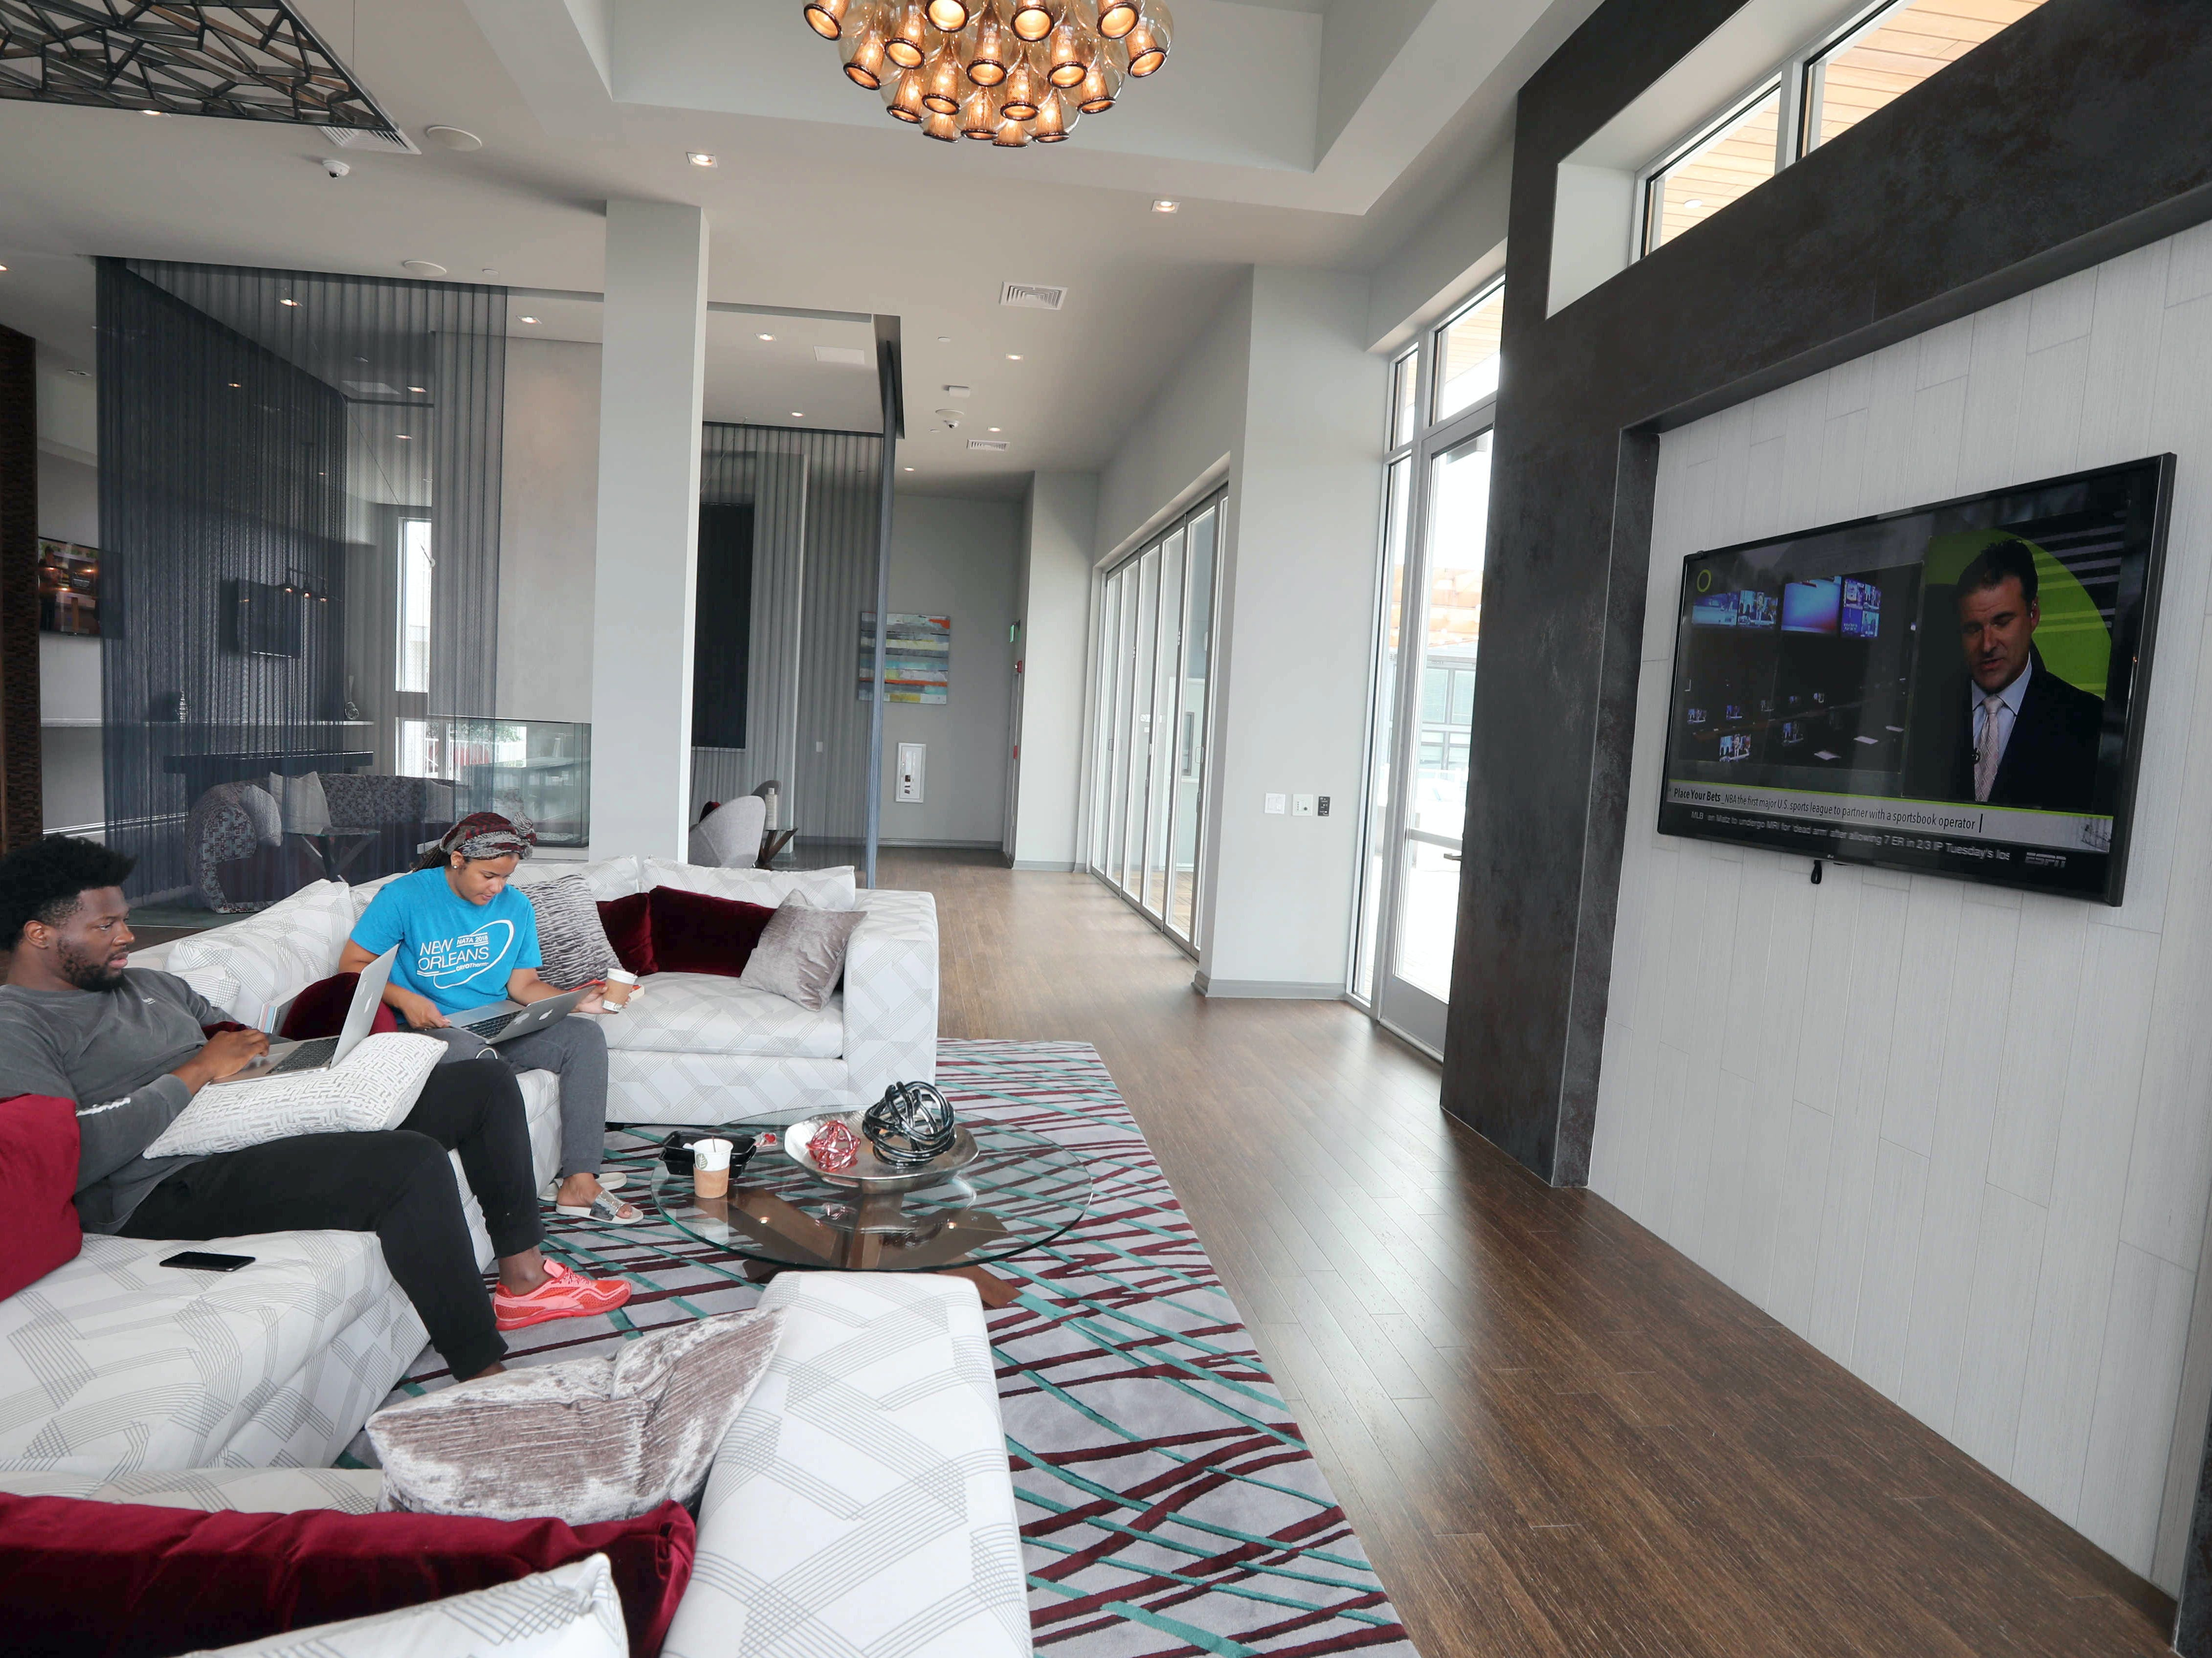 Ike Echebiri and Carolyn Smith spend time in the sky lounge at the Modera, a new luxury apartment building on the Yonkers riverfront Aug. 1, 2018. The Modera, which opened in January, will have over three-hundred studio, one-bedroom, and two-bedroom apartments when all when the building is totally completed.